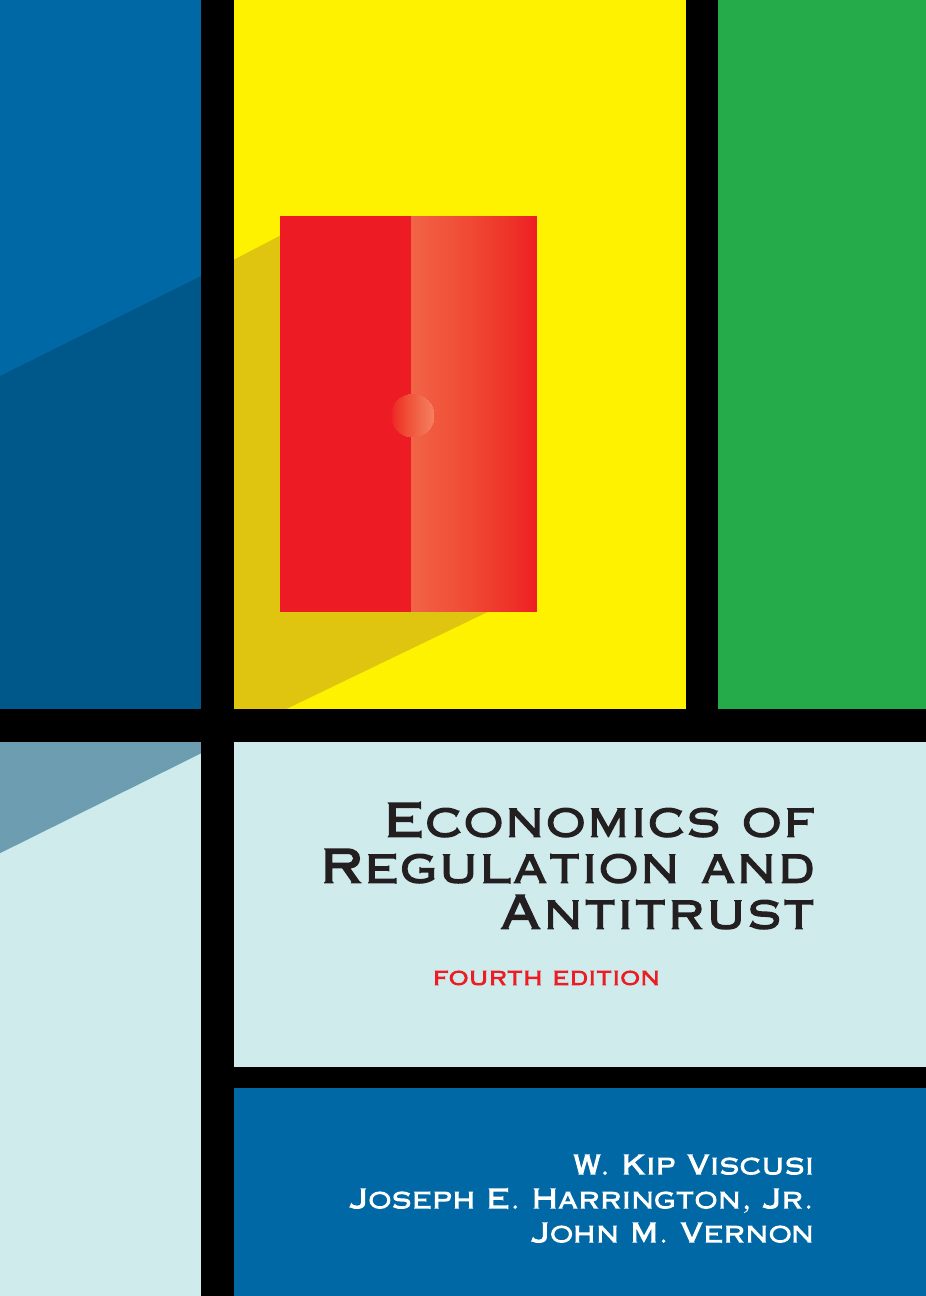 Economics of Regulation and Antitrust.jpg